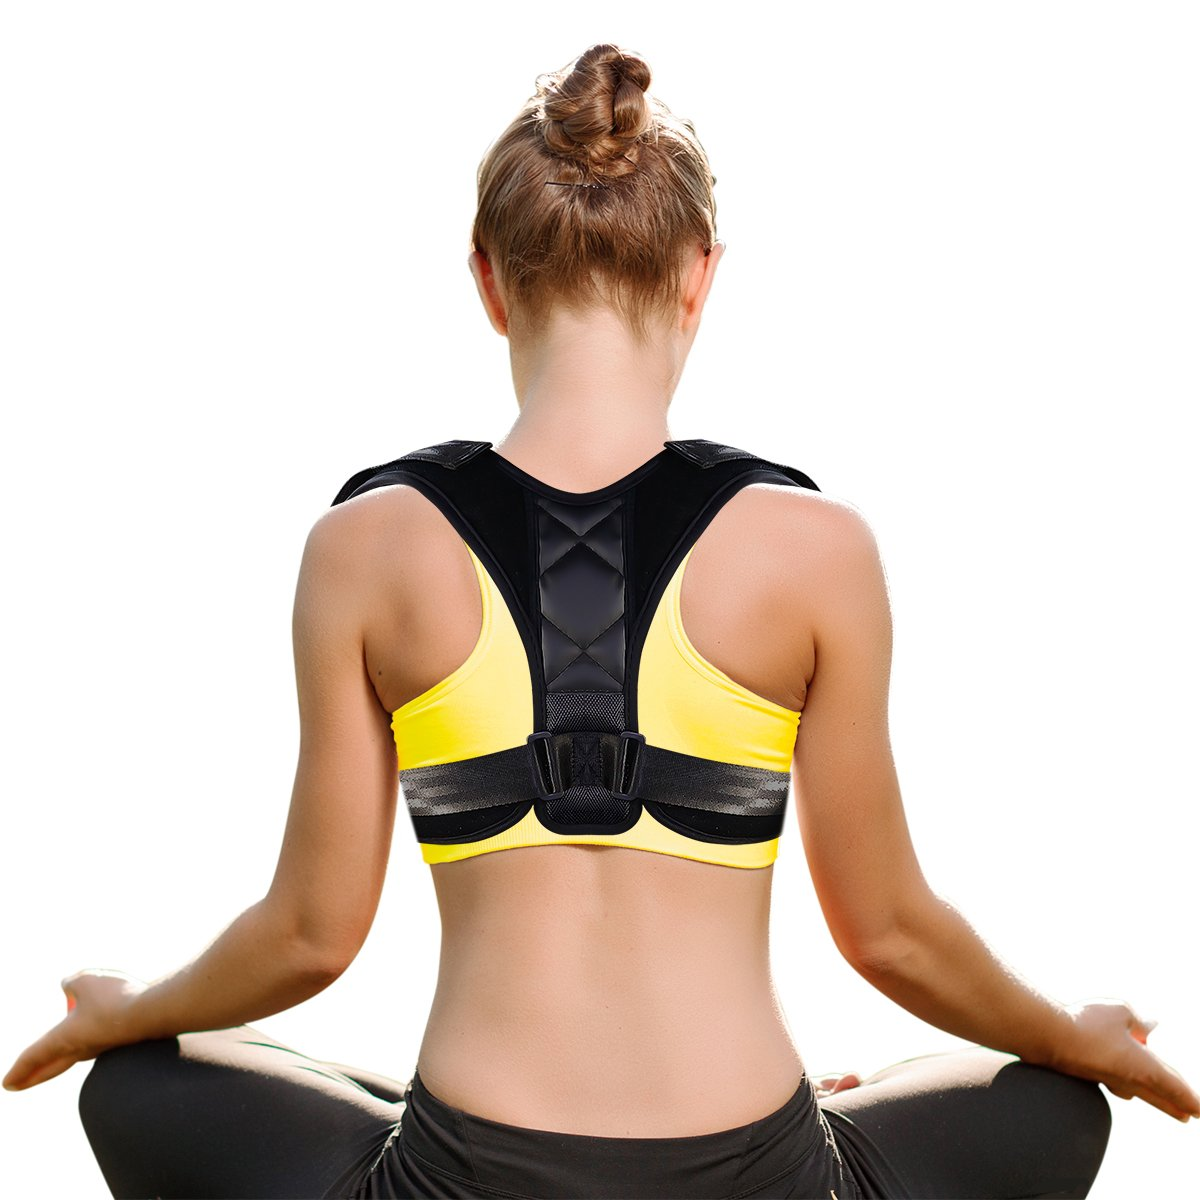 Posture Corrector for Women Men and Kids, Hualedi Back Support Posture Brace,Universal Adjustable and Comfortable [Upper Back Pain Relief] [Helps to Improve Posture]-Unisex Medical Orthopedic Brace by Hualedi